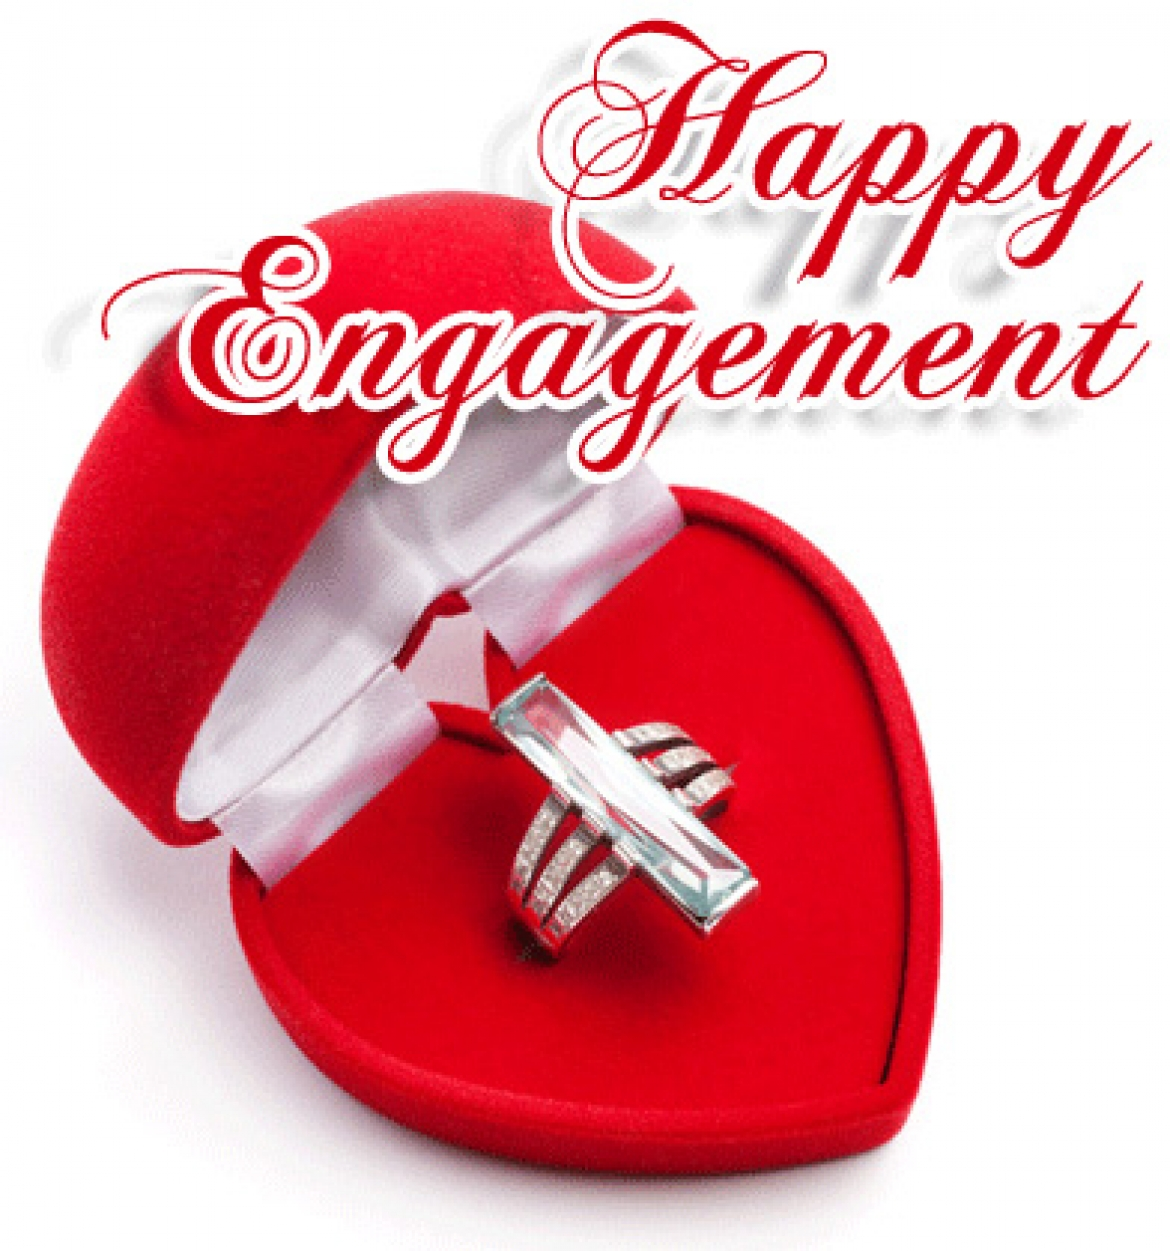 engagement r gm quote - HD1170×1251